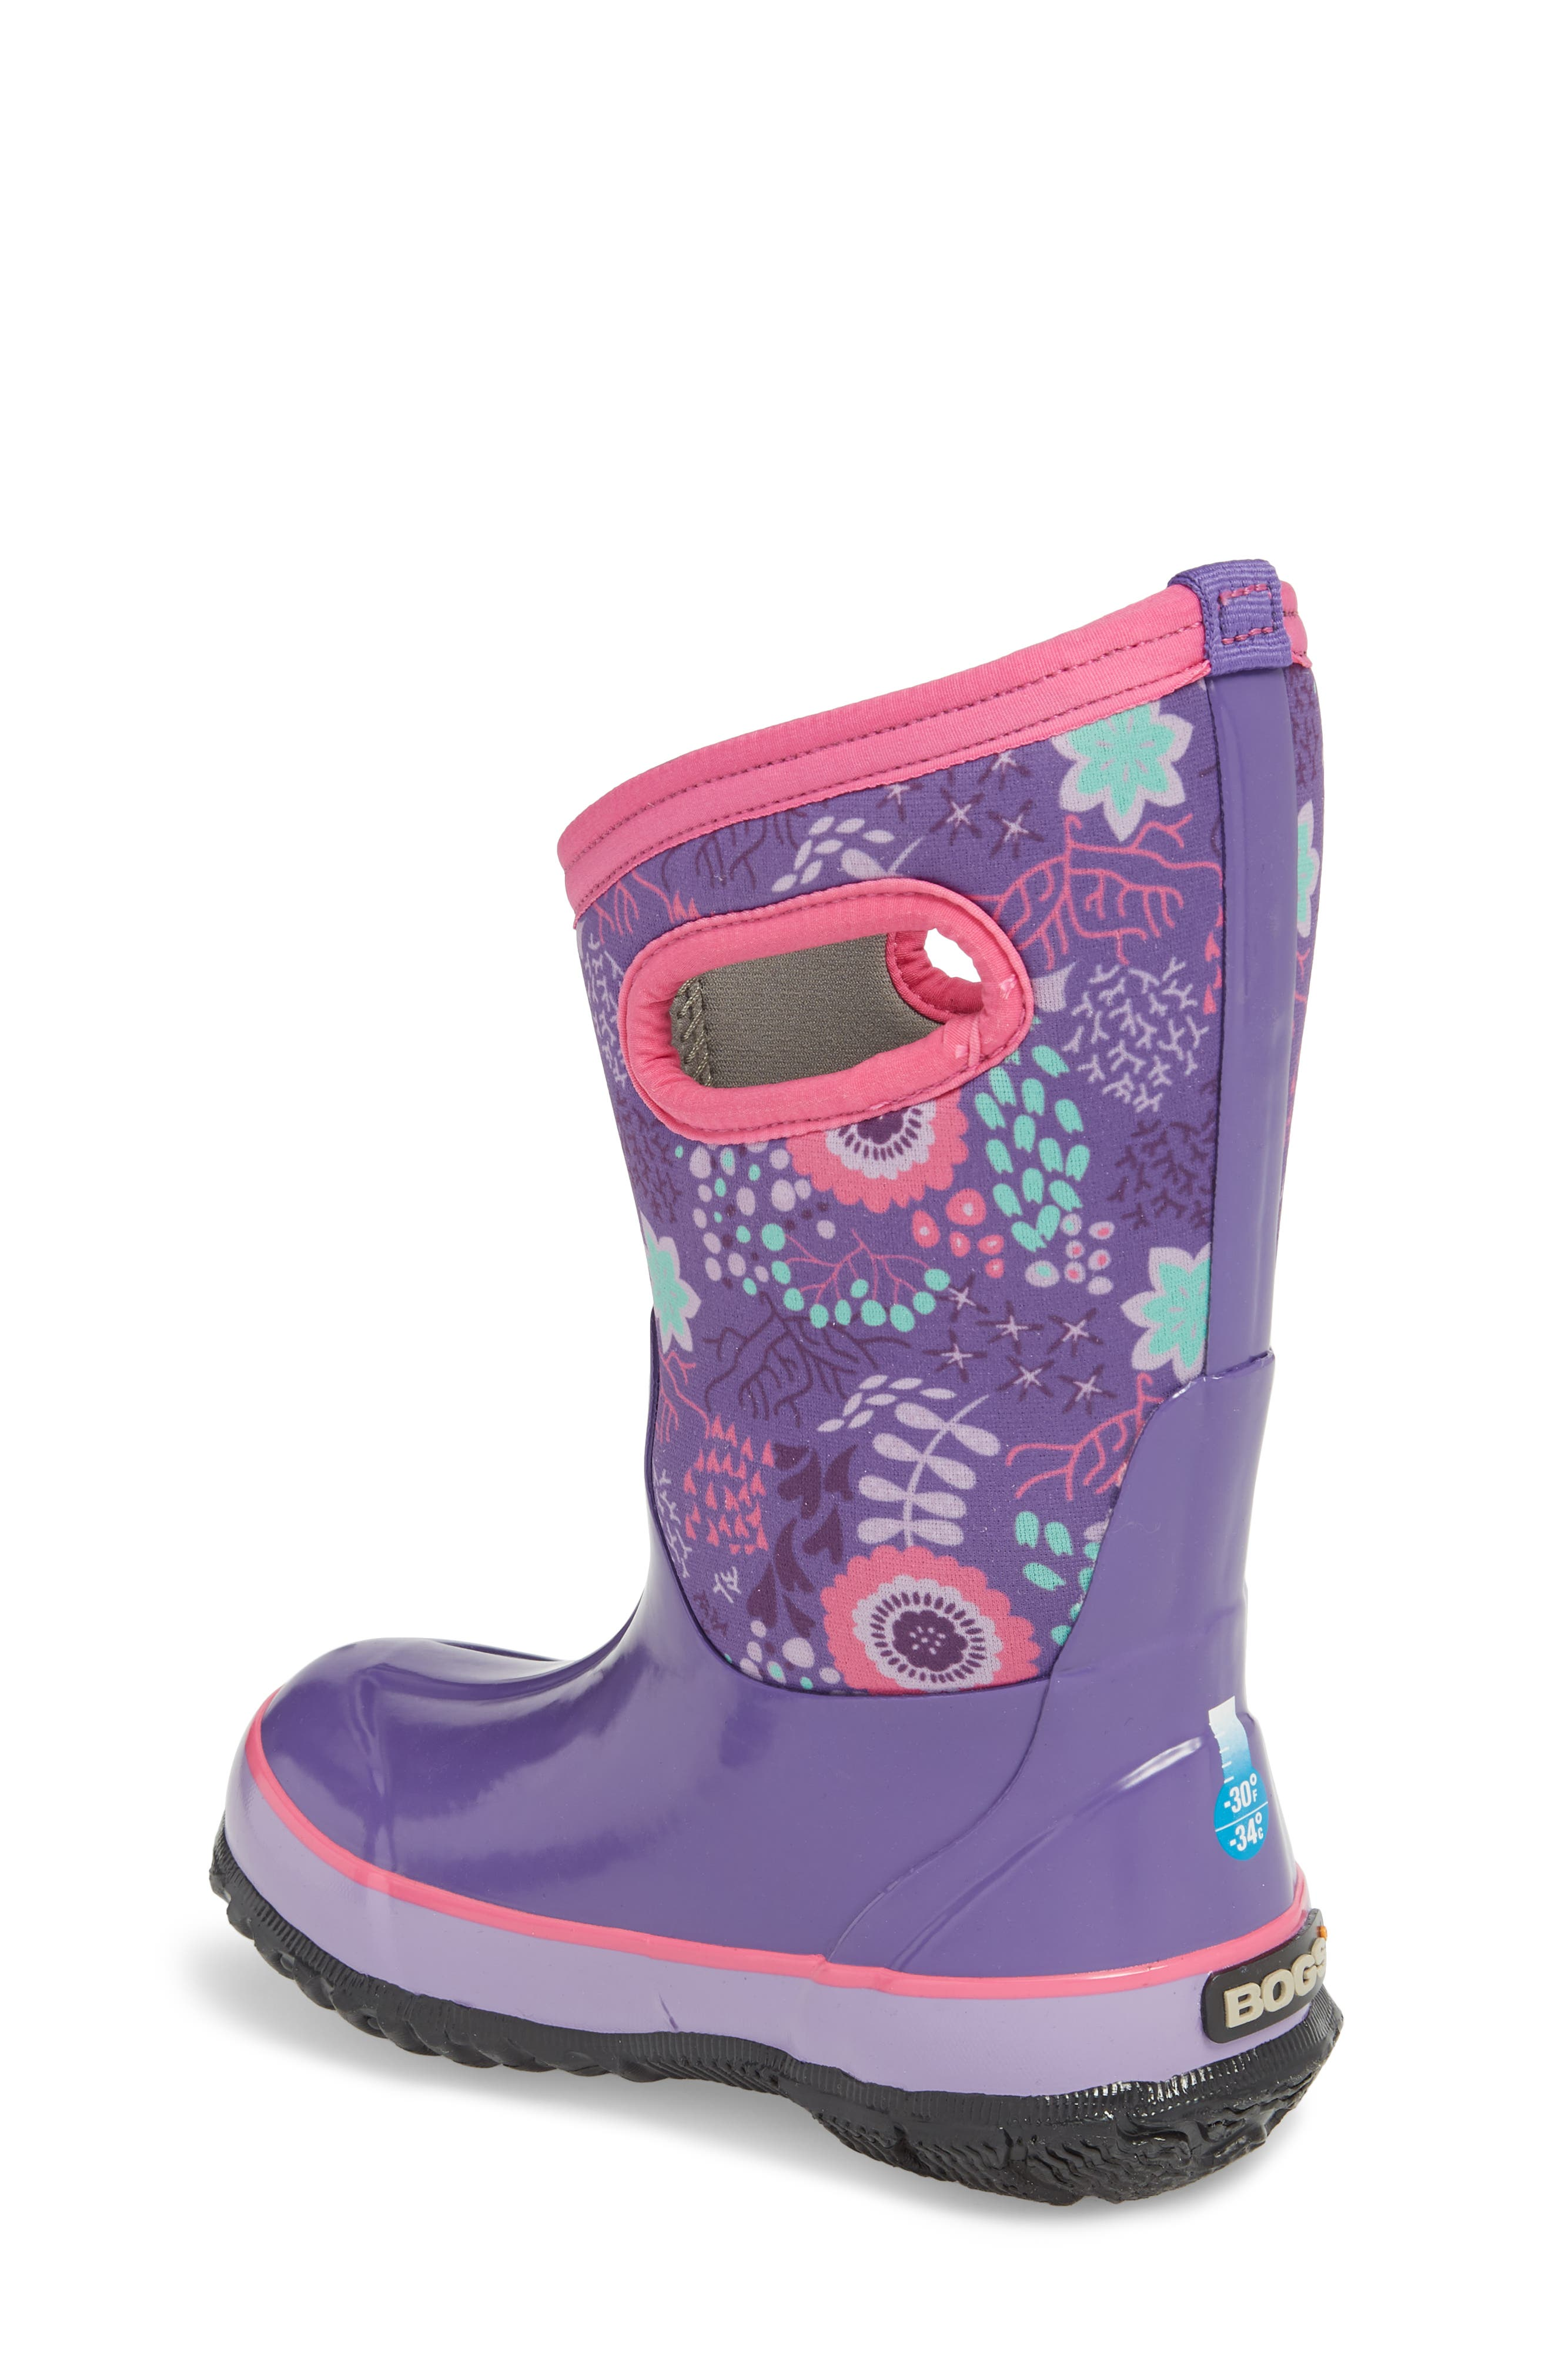 BOGS,                             Classic Reef Insulated Print Waterproof Boot,                             Alternate thumbnail 2, color,                             540